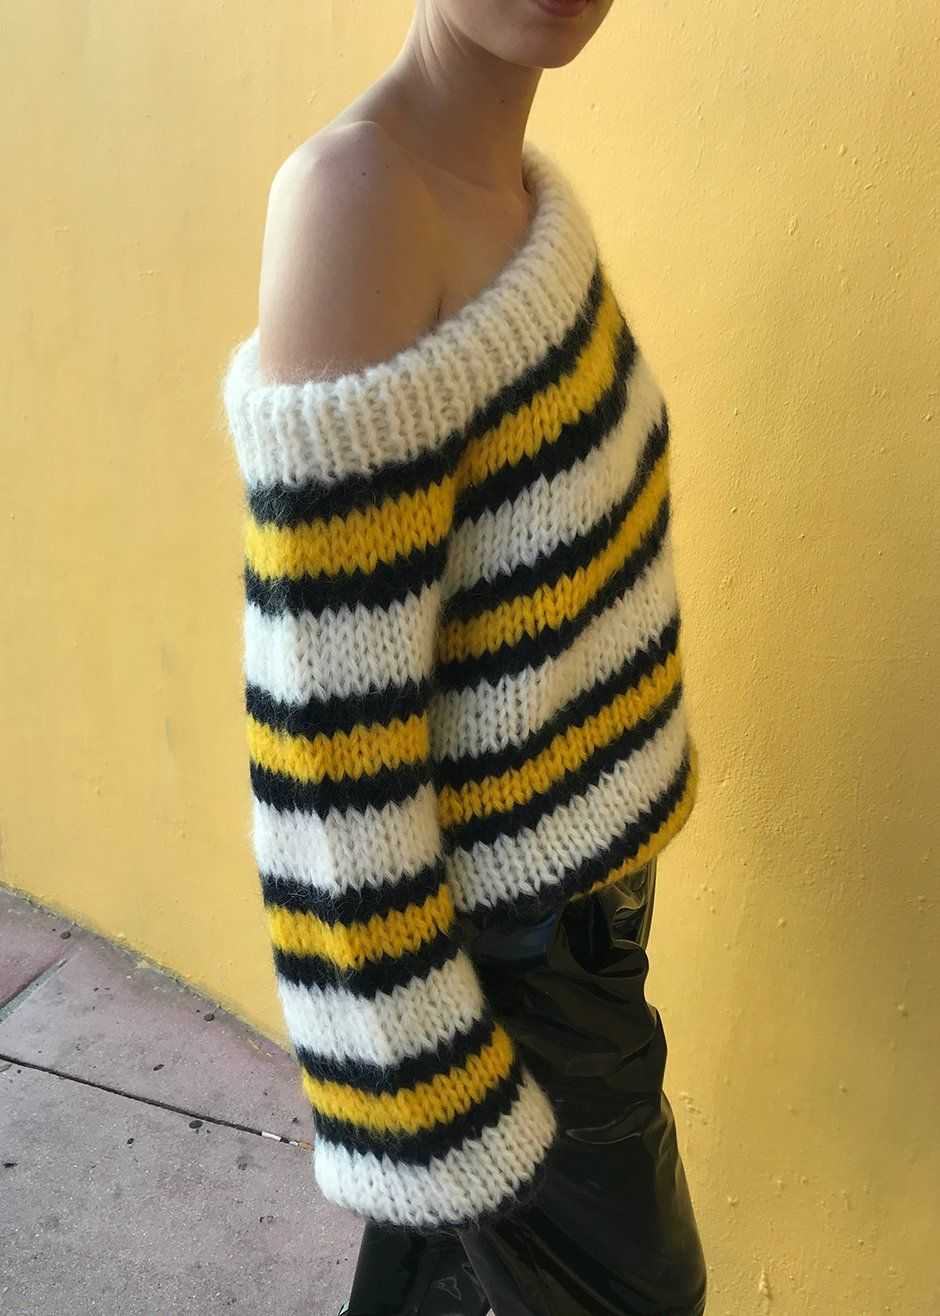 #newarrivals #Ganni #Julliard #offtheshoulder #striped #mohair #knit  #sweater #thefrankieshop #frankienyc #frankiegirl Striped Chunky Knit,  Pullover Sweater ...